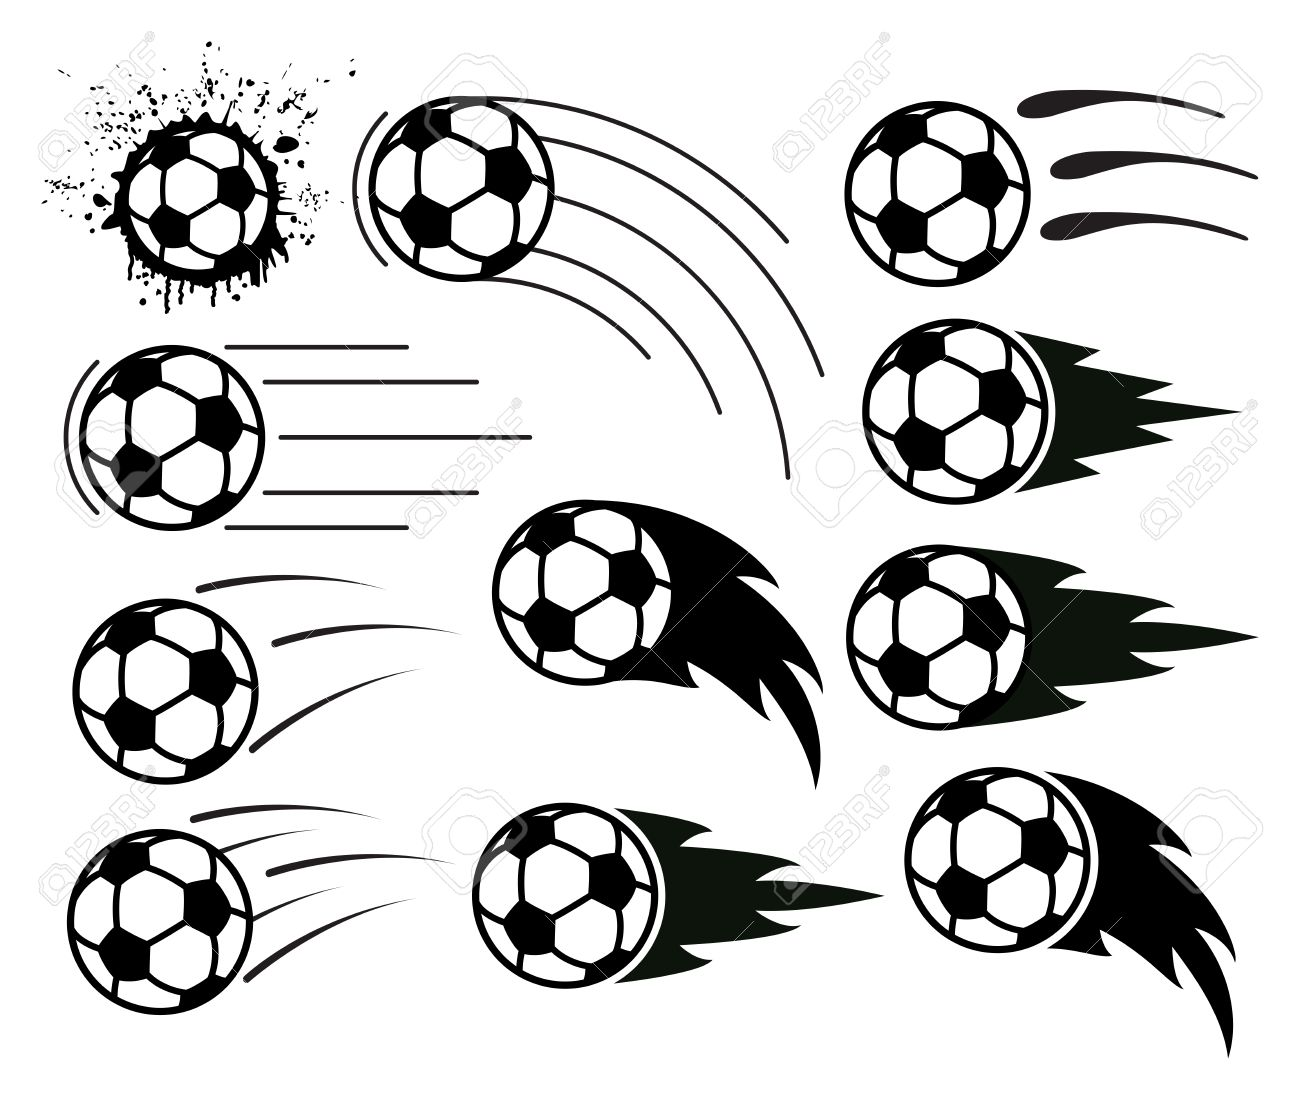 1300x1100 Vector Drawing Of Flying Soccer And Football Balls Royalty Free